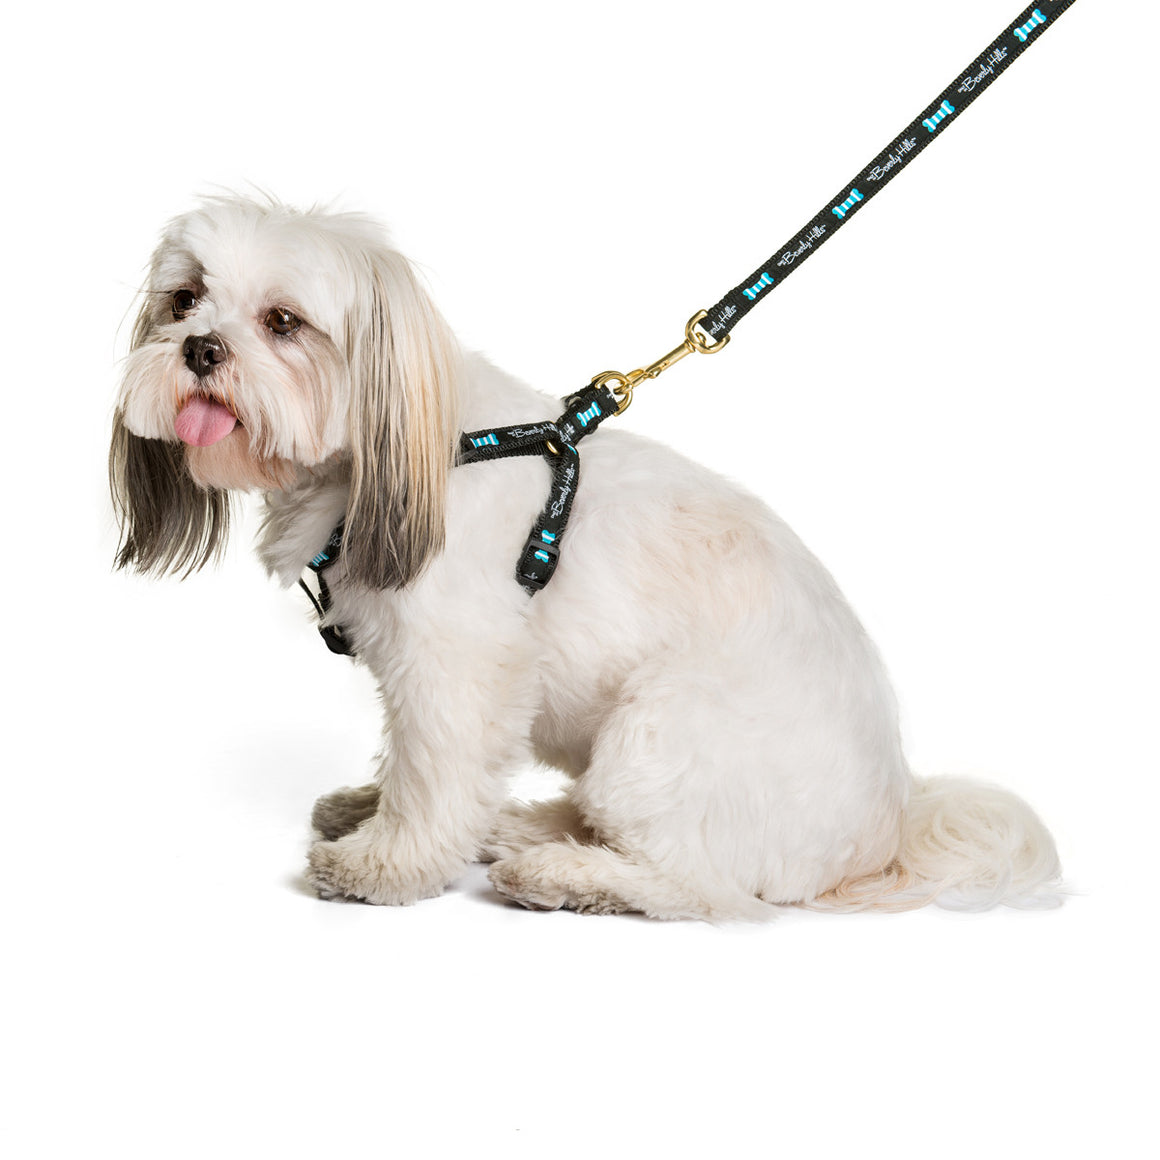 Posh Pooch 90210 Dog Harness Beverly Hills